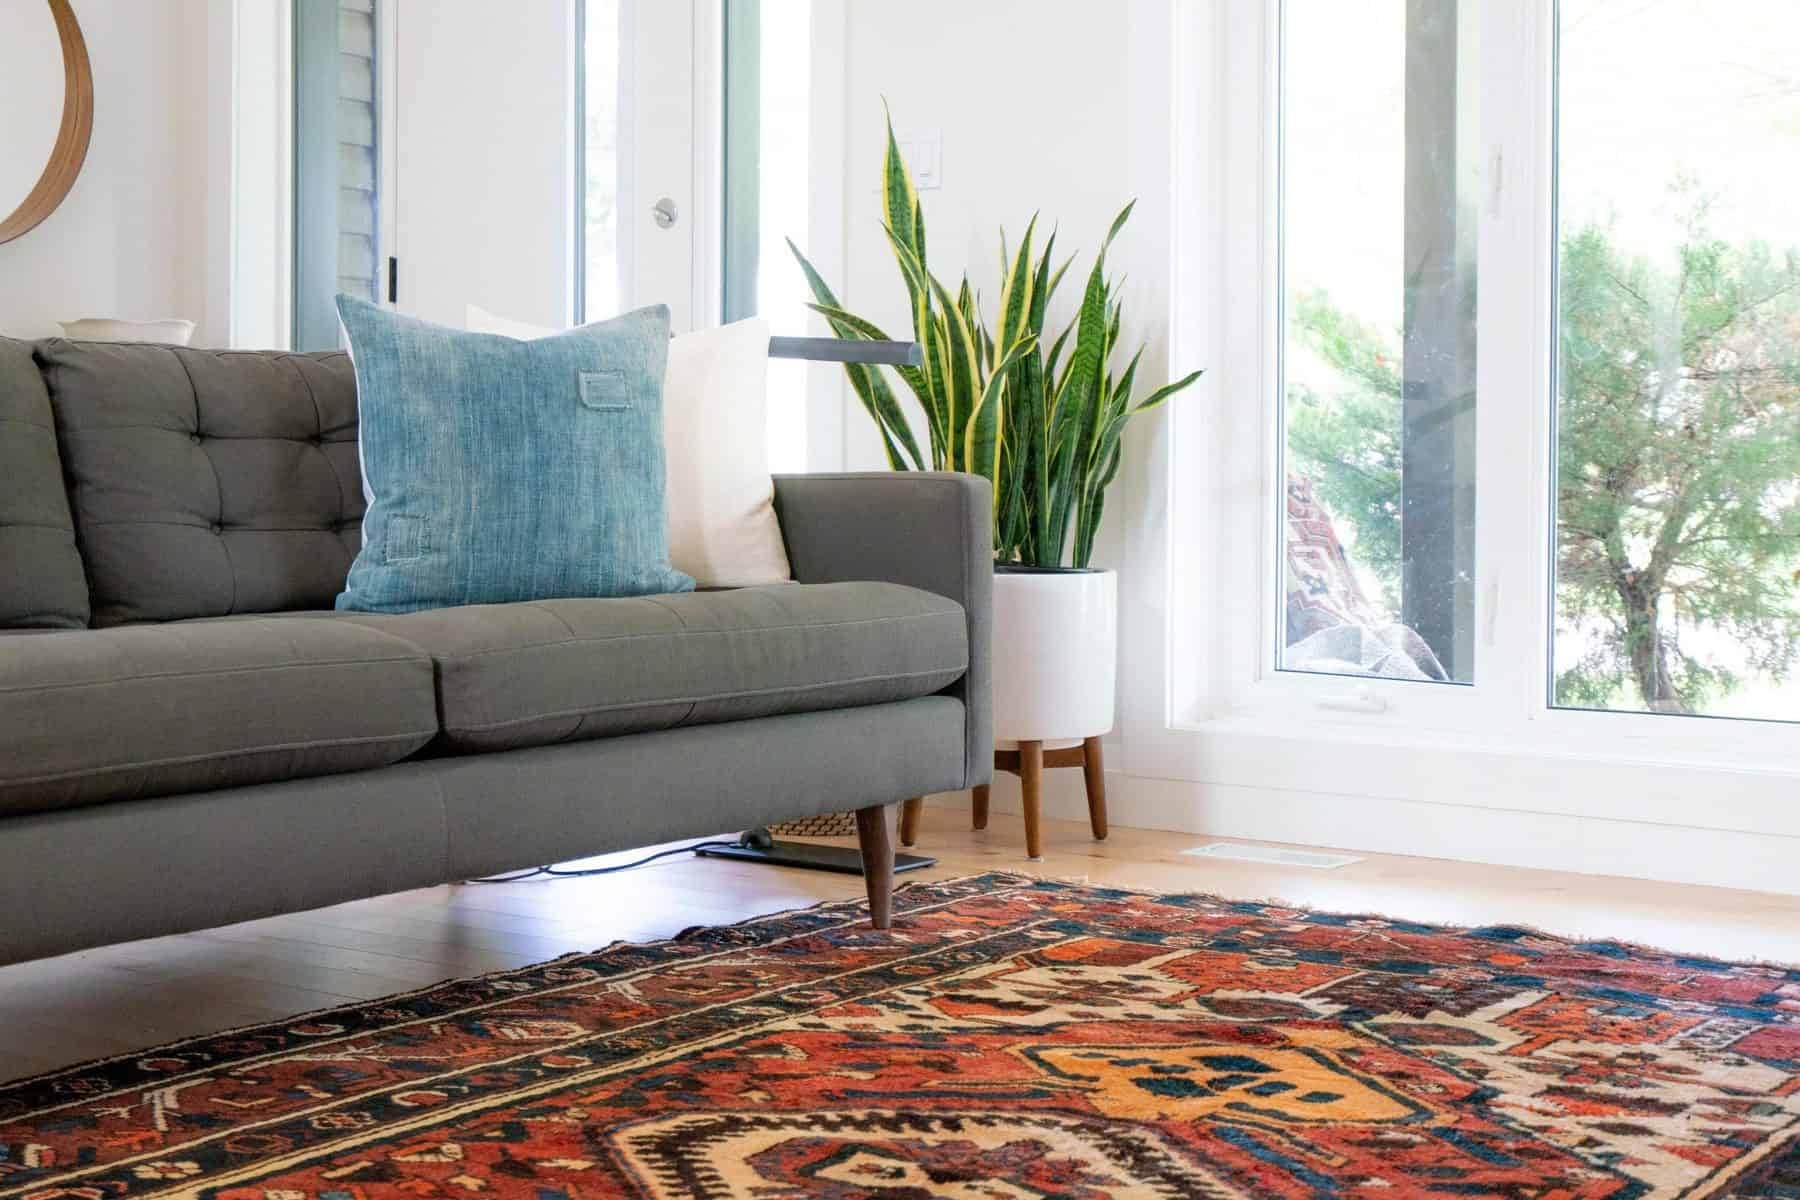 5 Great Flooring Ideas for Your New Garden Room - rug on laminate